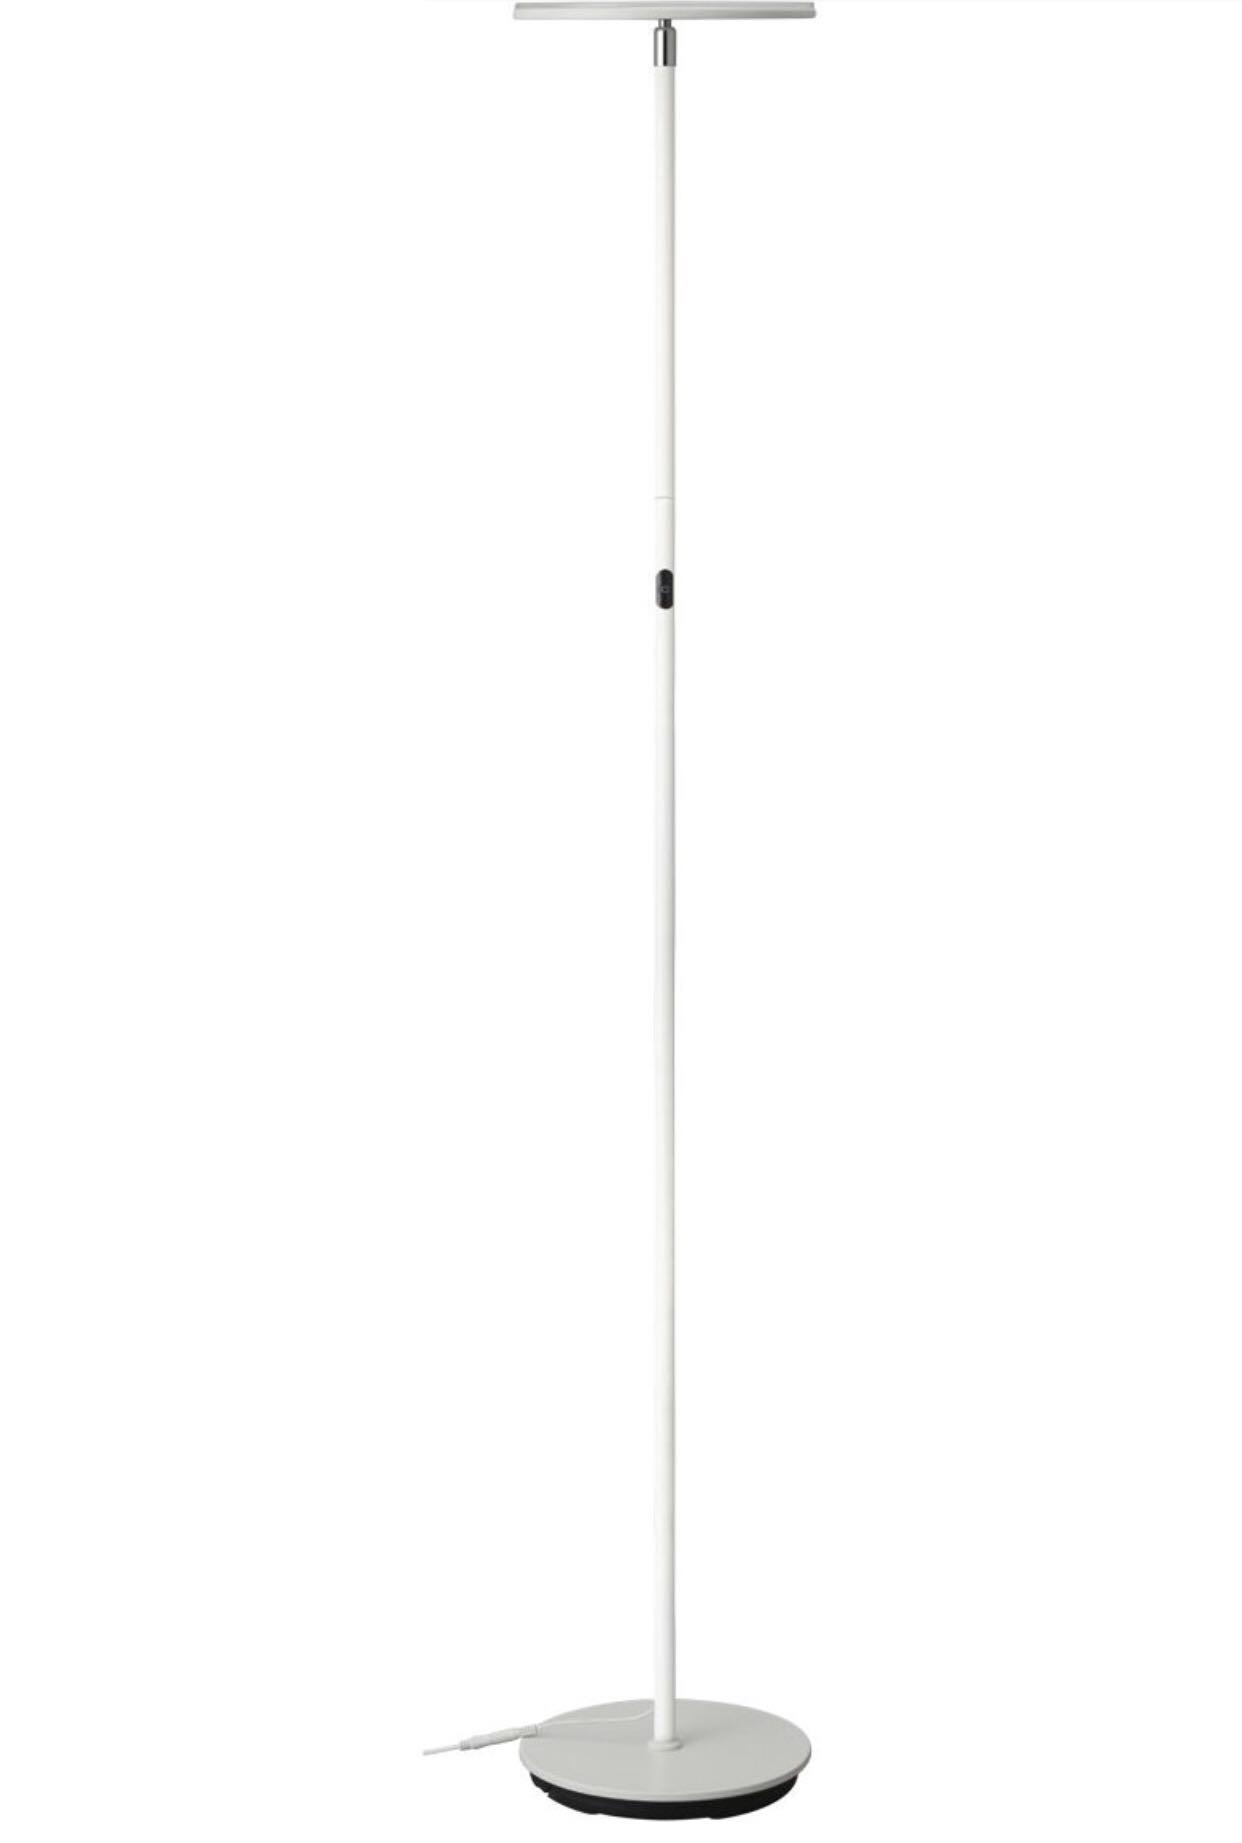 211 Phive Led Floor Lamp Dimmable Super Bright 30w Led Torchiere Floor Lamp 3 Brightness Levels